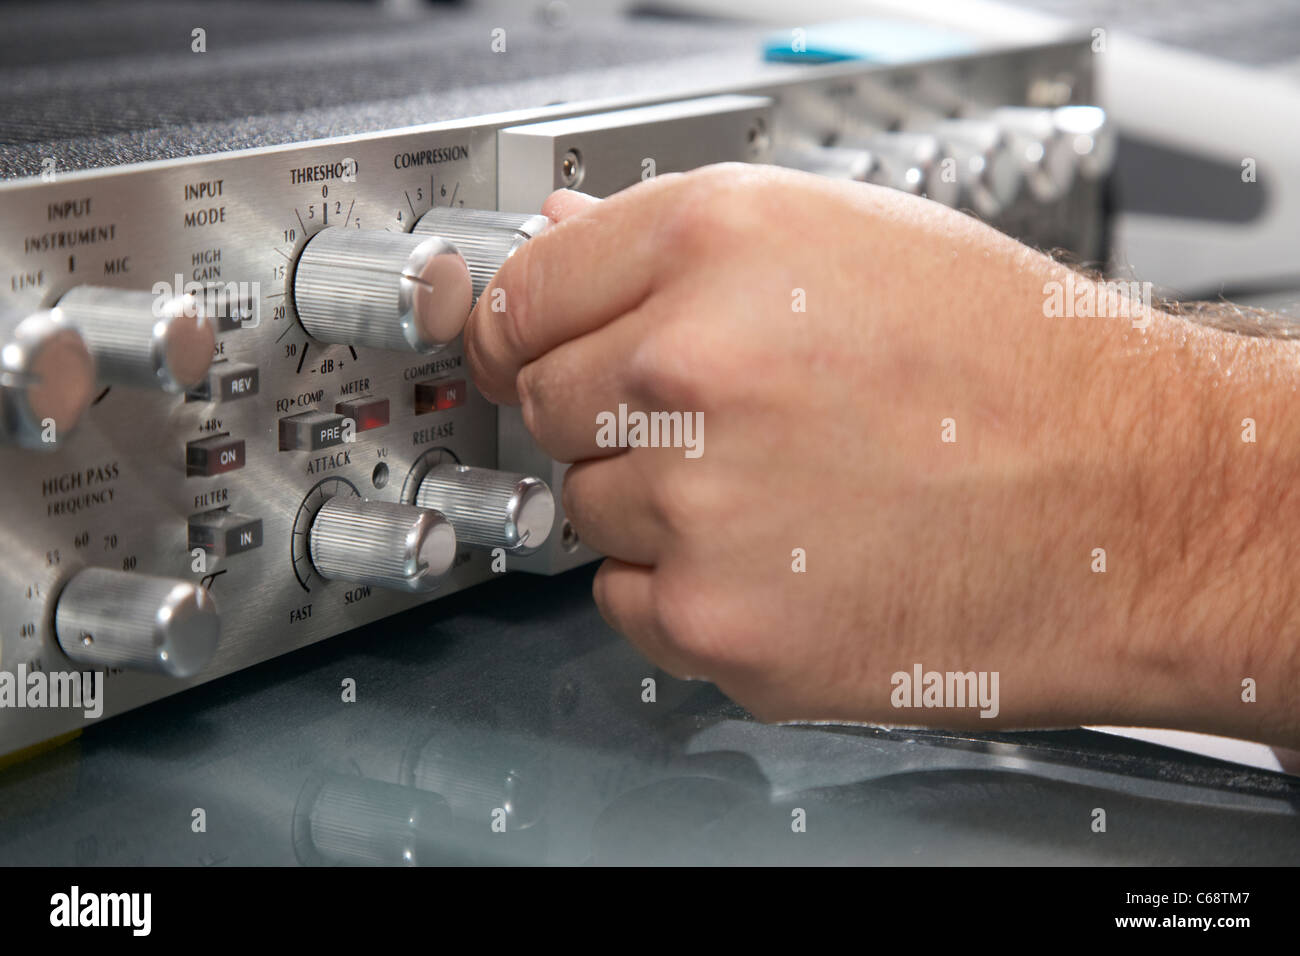 mans hand adjusting compression on avalon vacuum tube sound engineering equipment - Stock Image